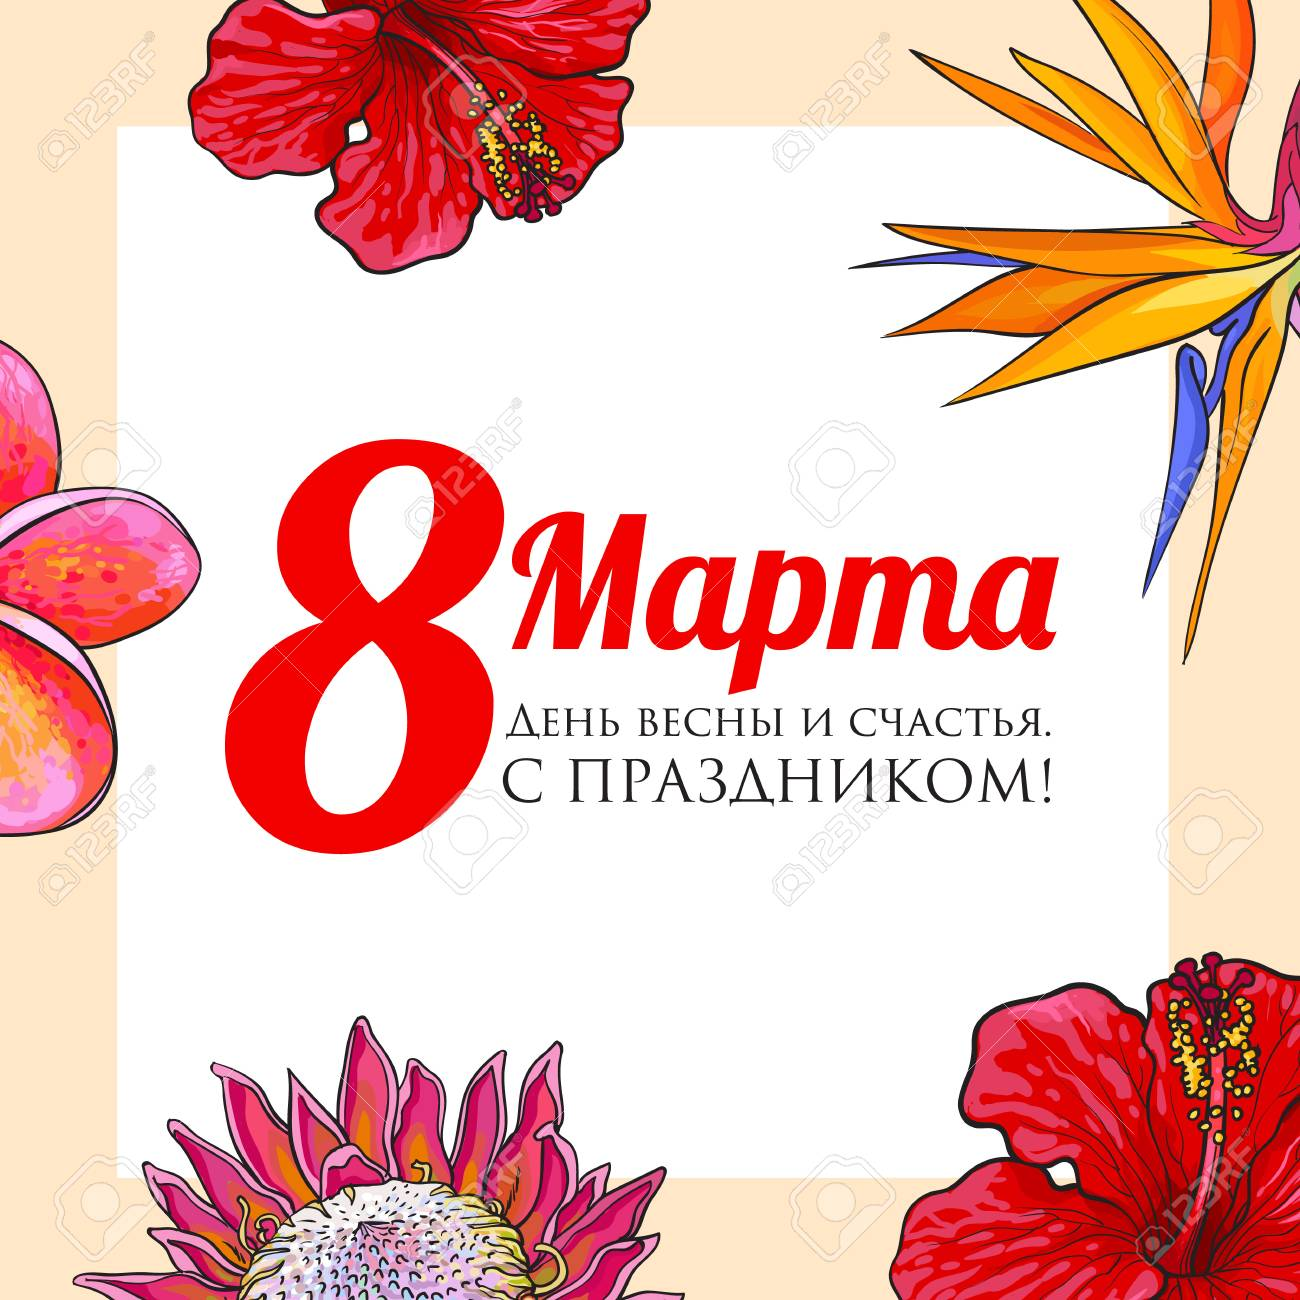 March 8 happy women day colorful greeting card in russian language march 8 happy women day colorful greeting card in russian language with flowers in m4hsunfo